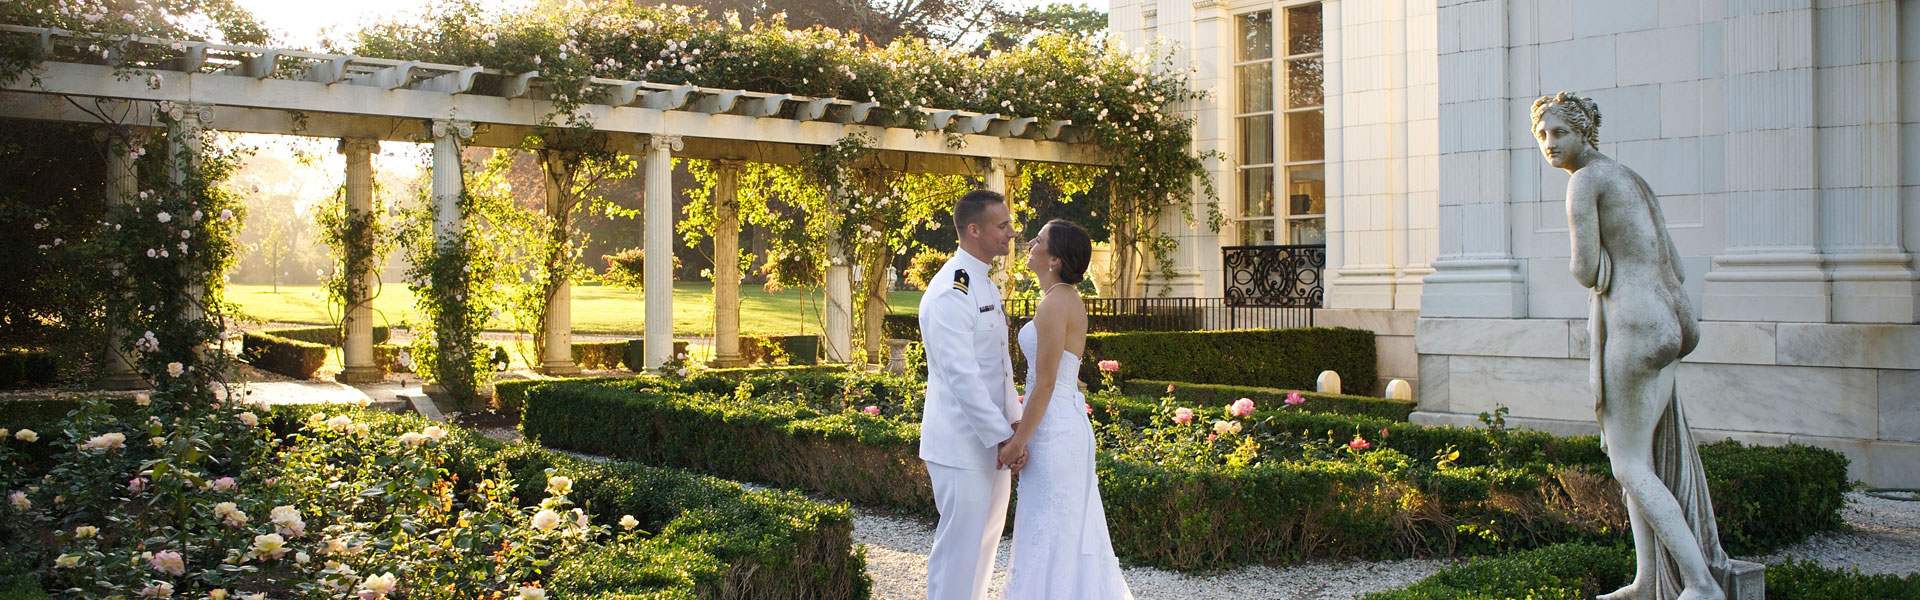 Weddings At The Newport Mansions Preservation Society Of County